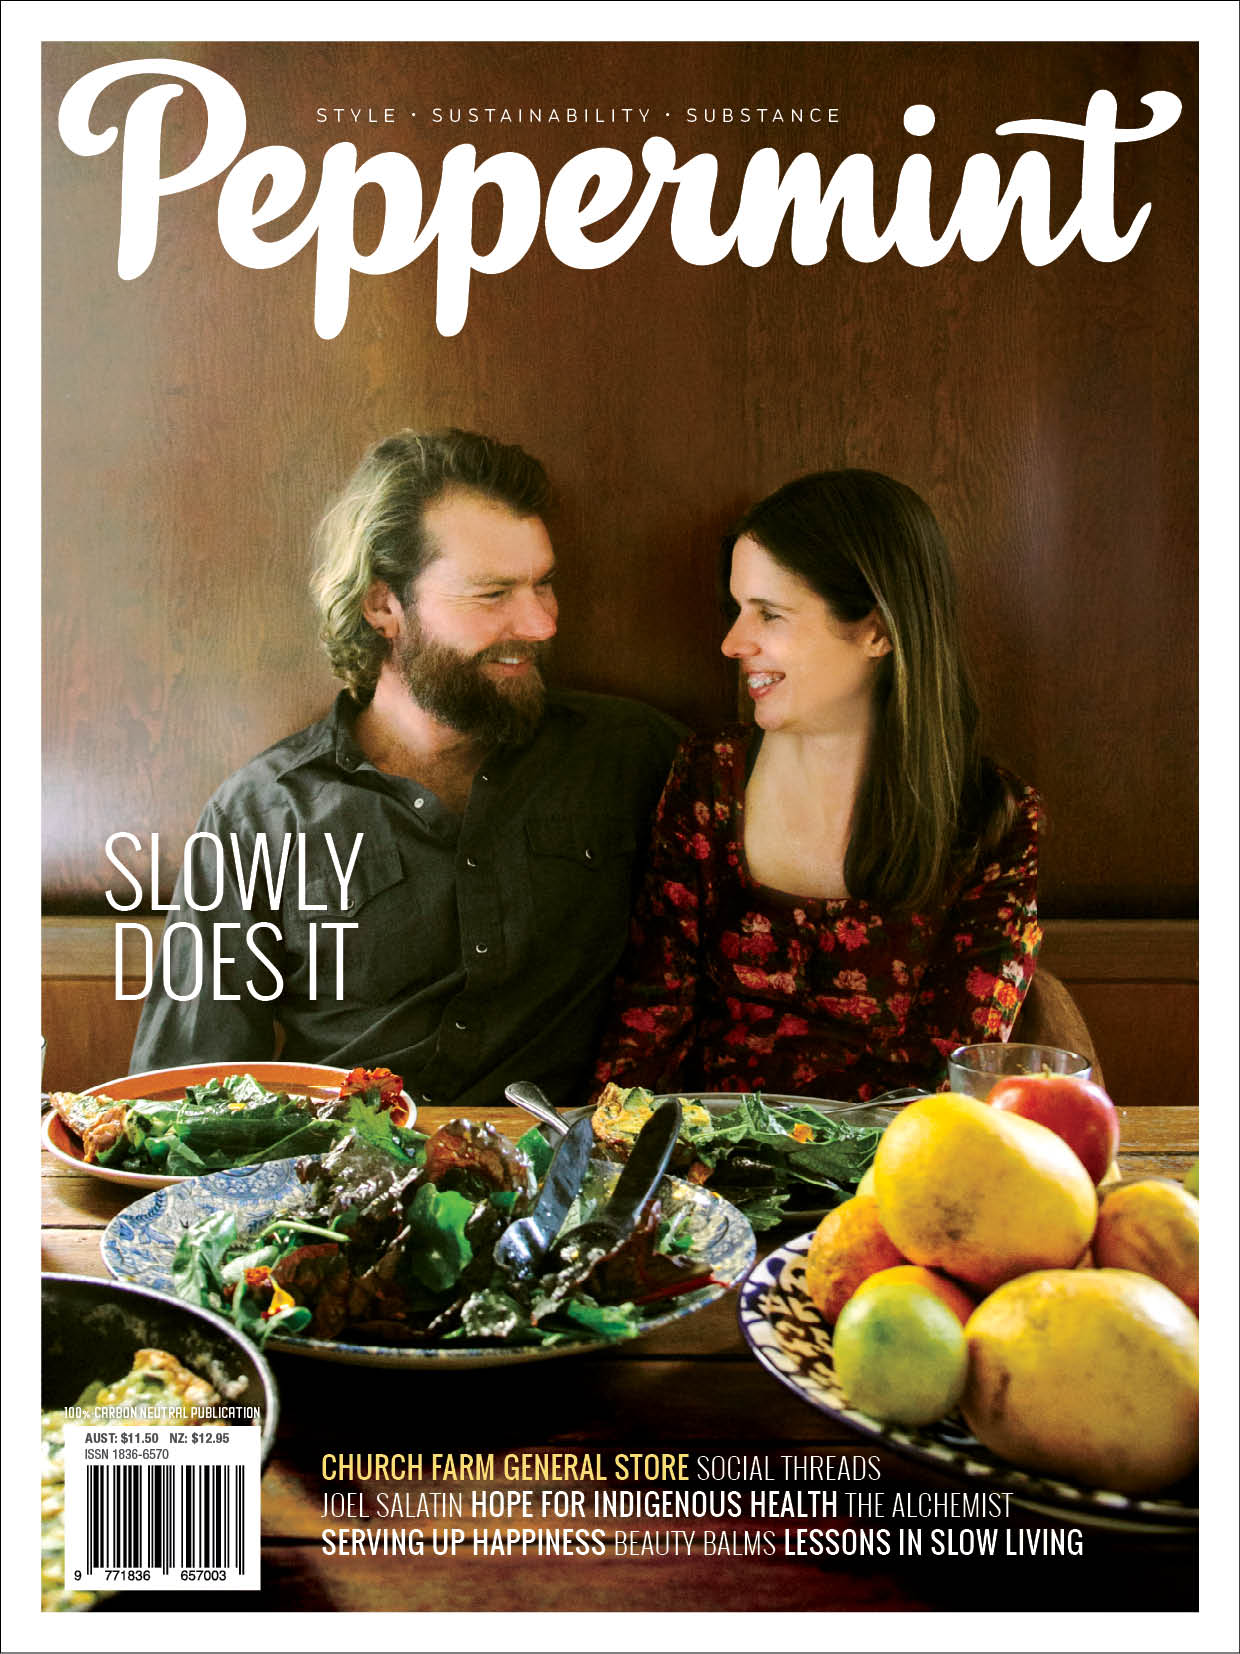 Peppermint Spring Issue 27 slowly does it